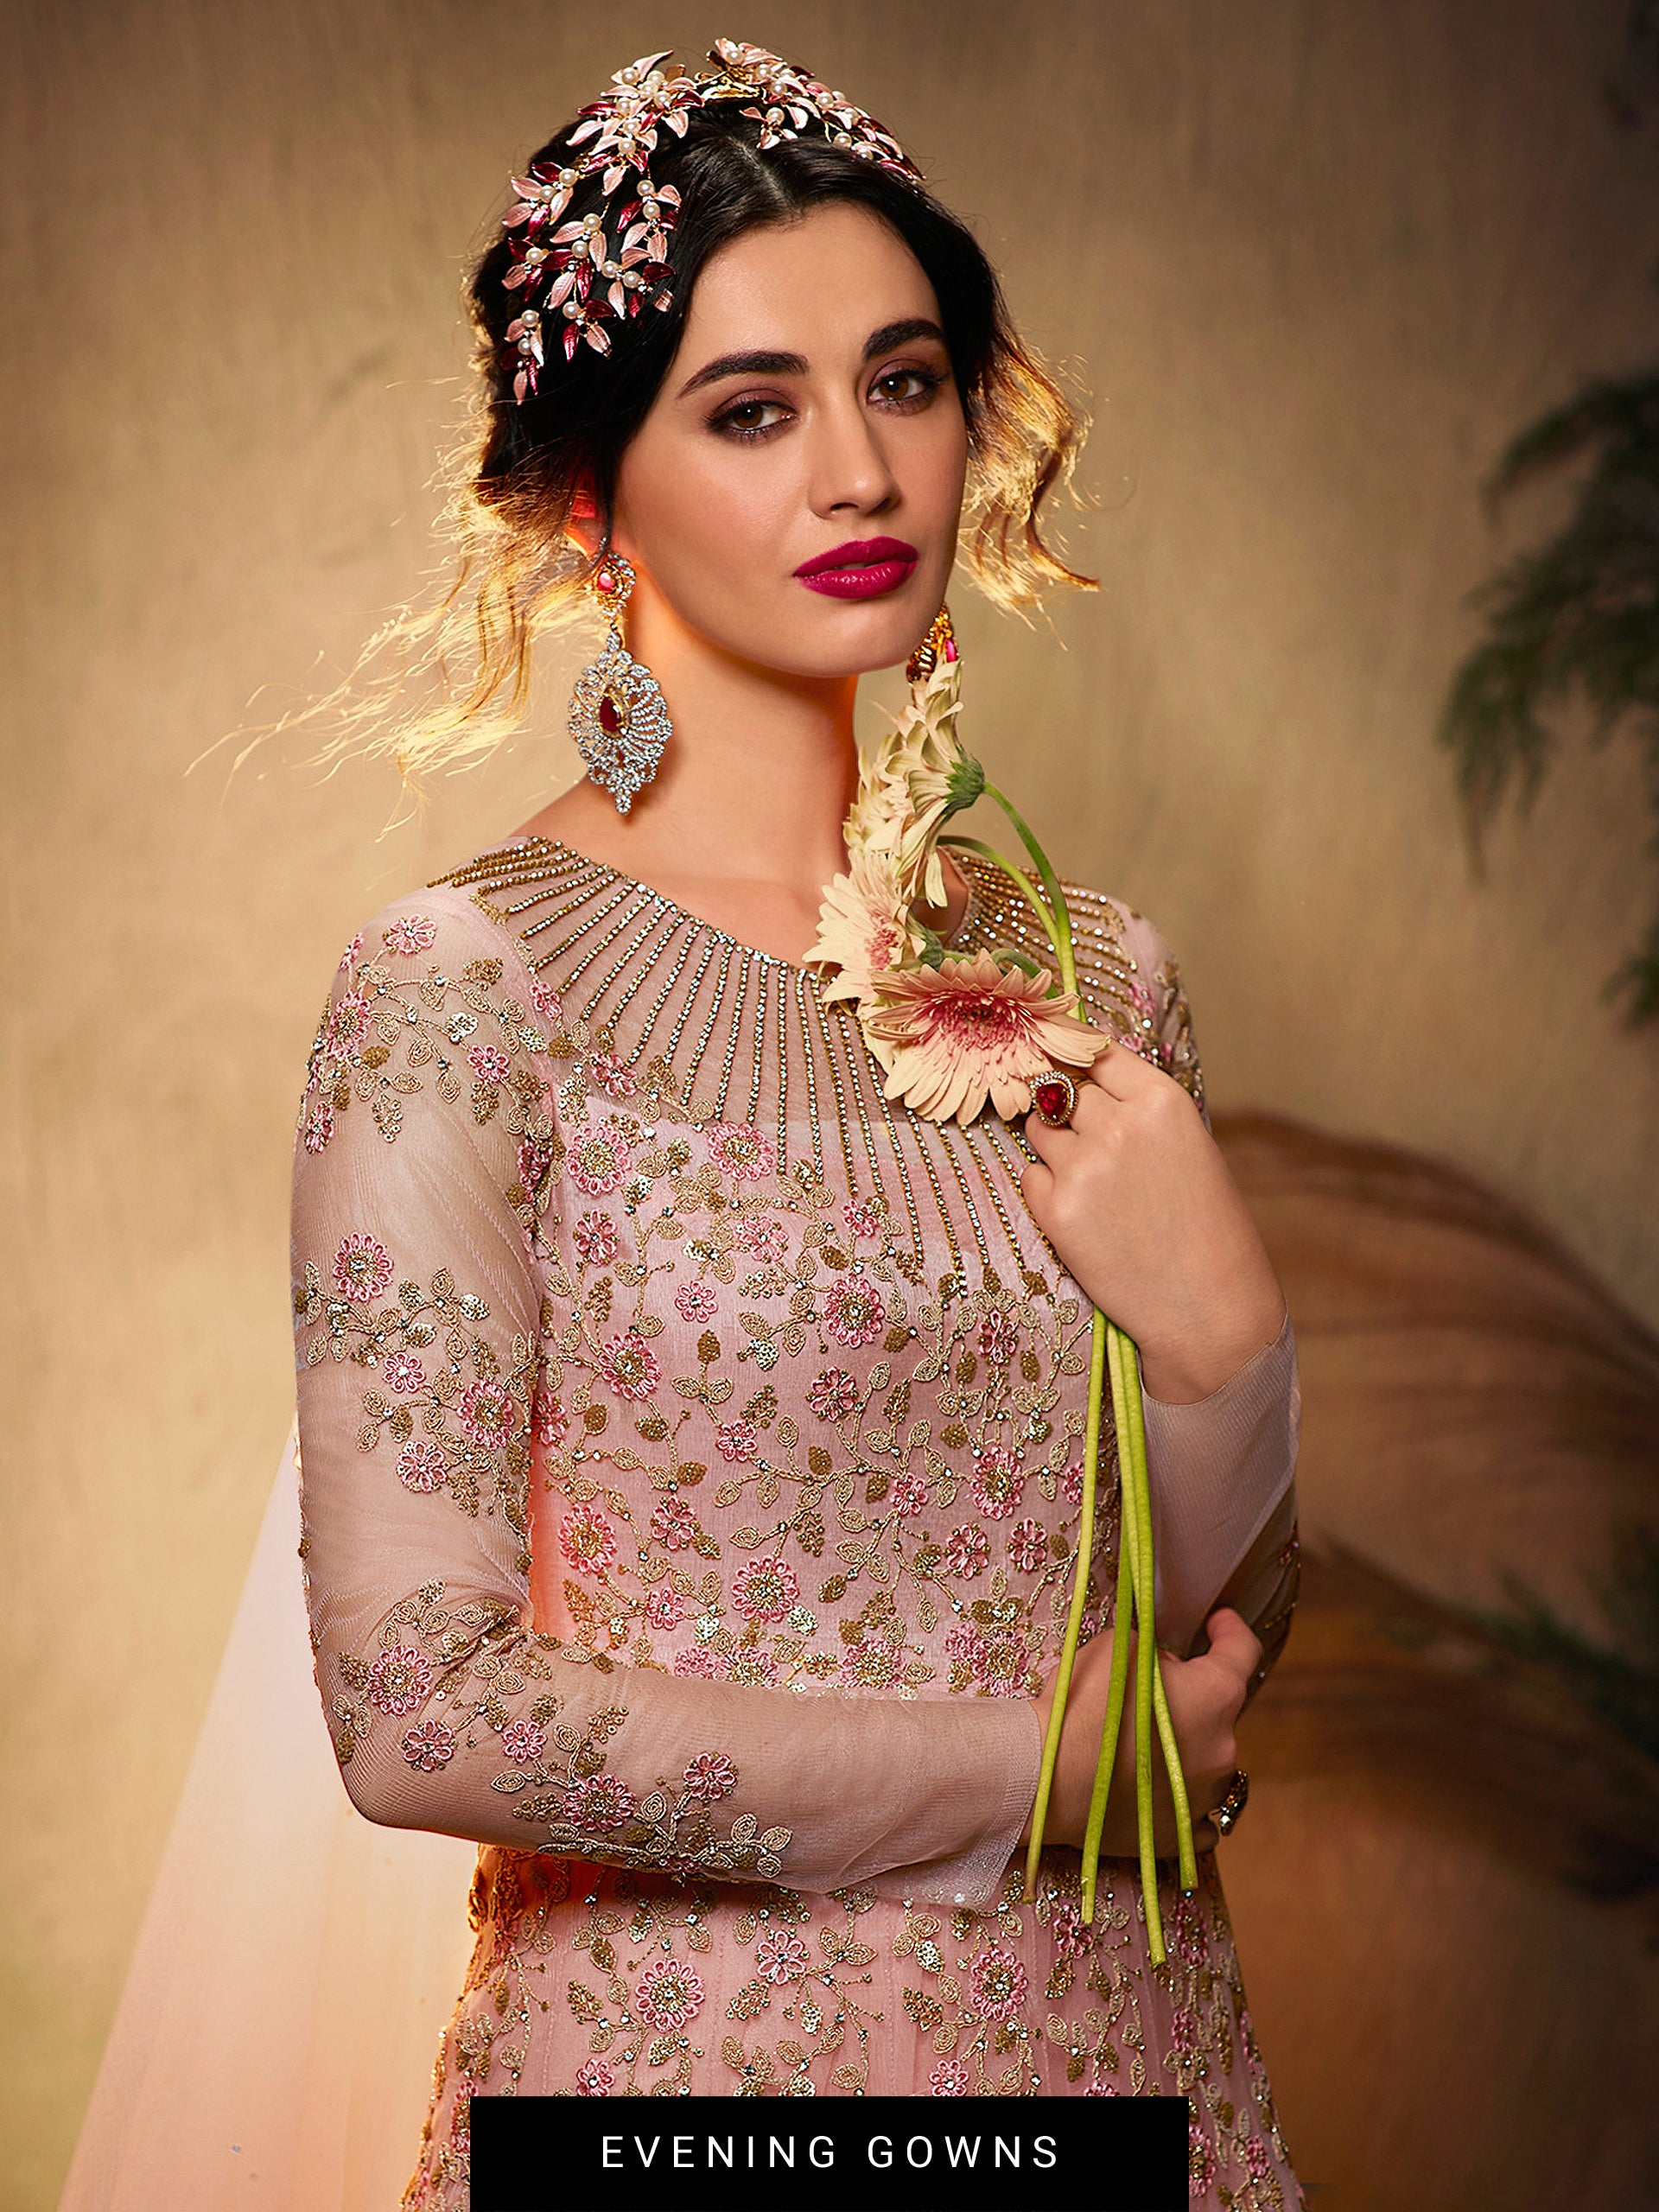 Buy Indian Clothing Wedding Dresses Lehengas Anarkali Suit Pant Online Saira S Boutique,How Much Do Wedding Dresses Cost On Average